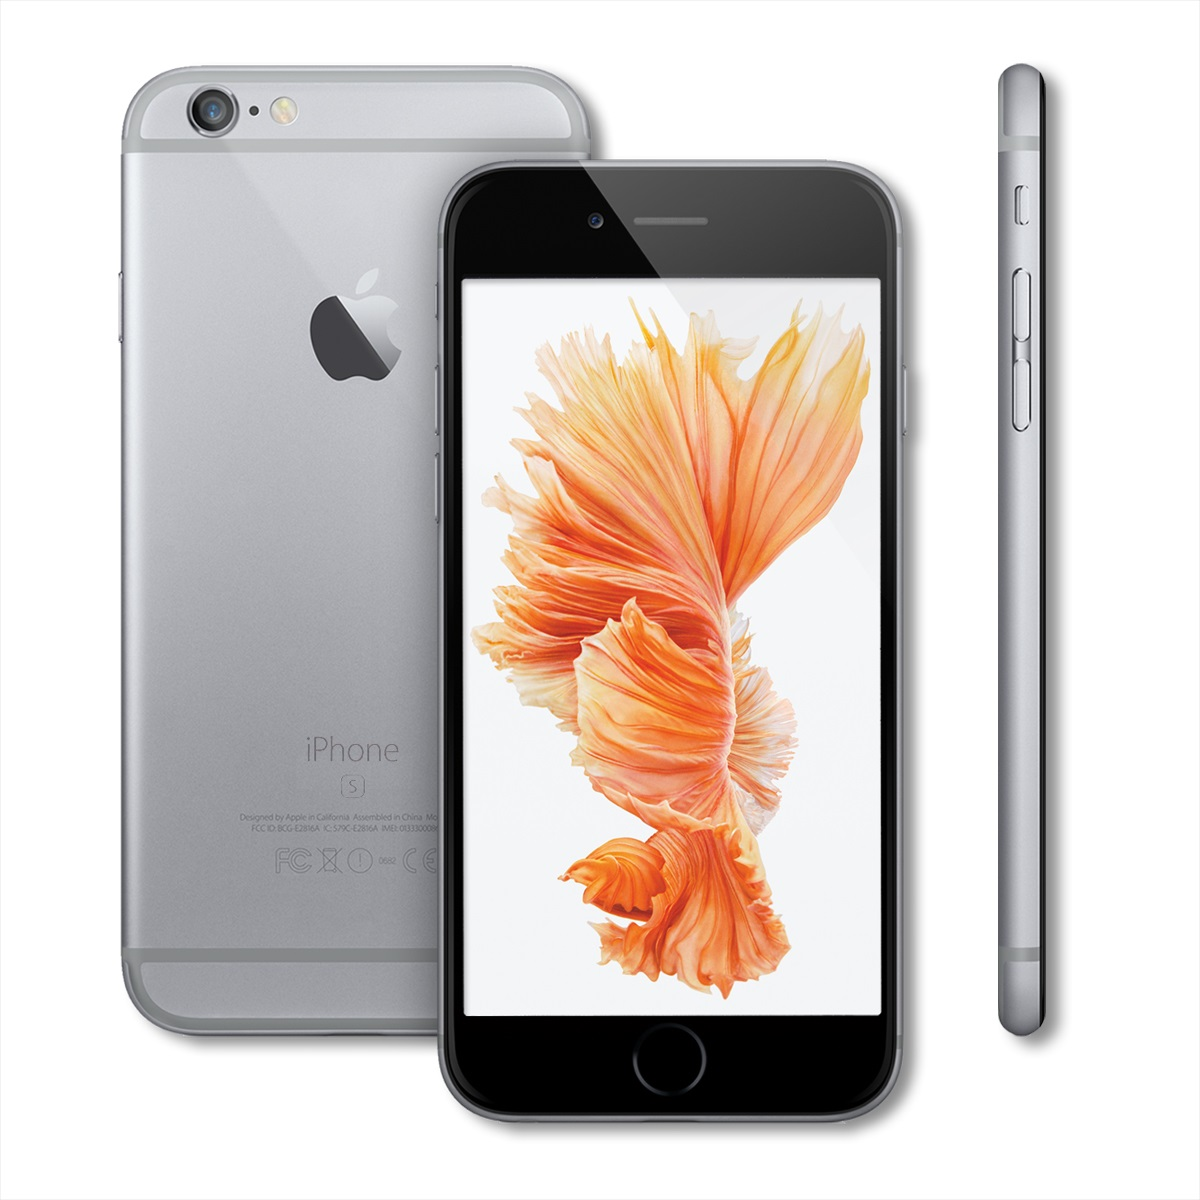 iphone 6s at t apple iphone 6s 32gb smartphone unlocked a1688 sprint t 11464